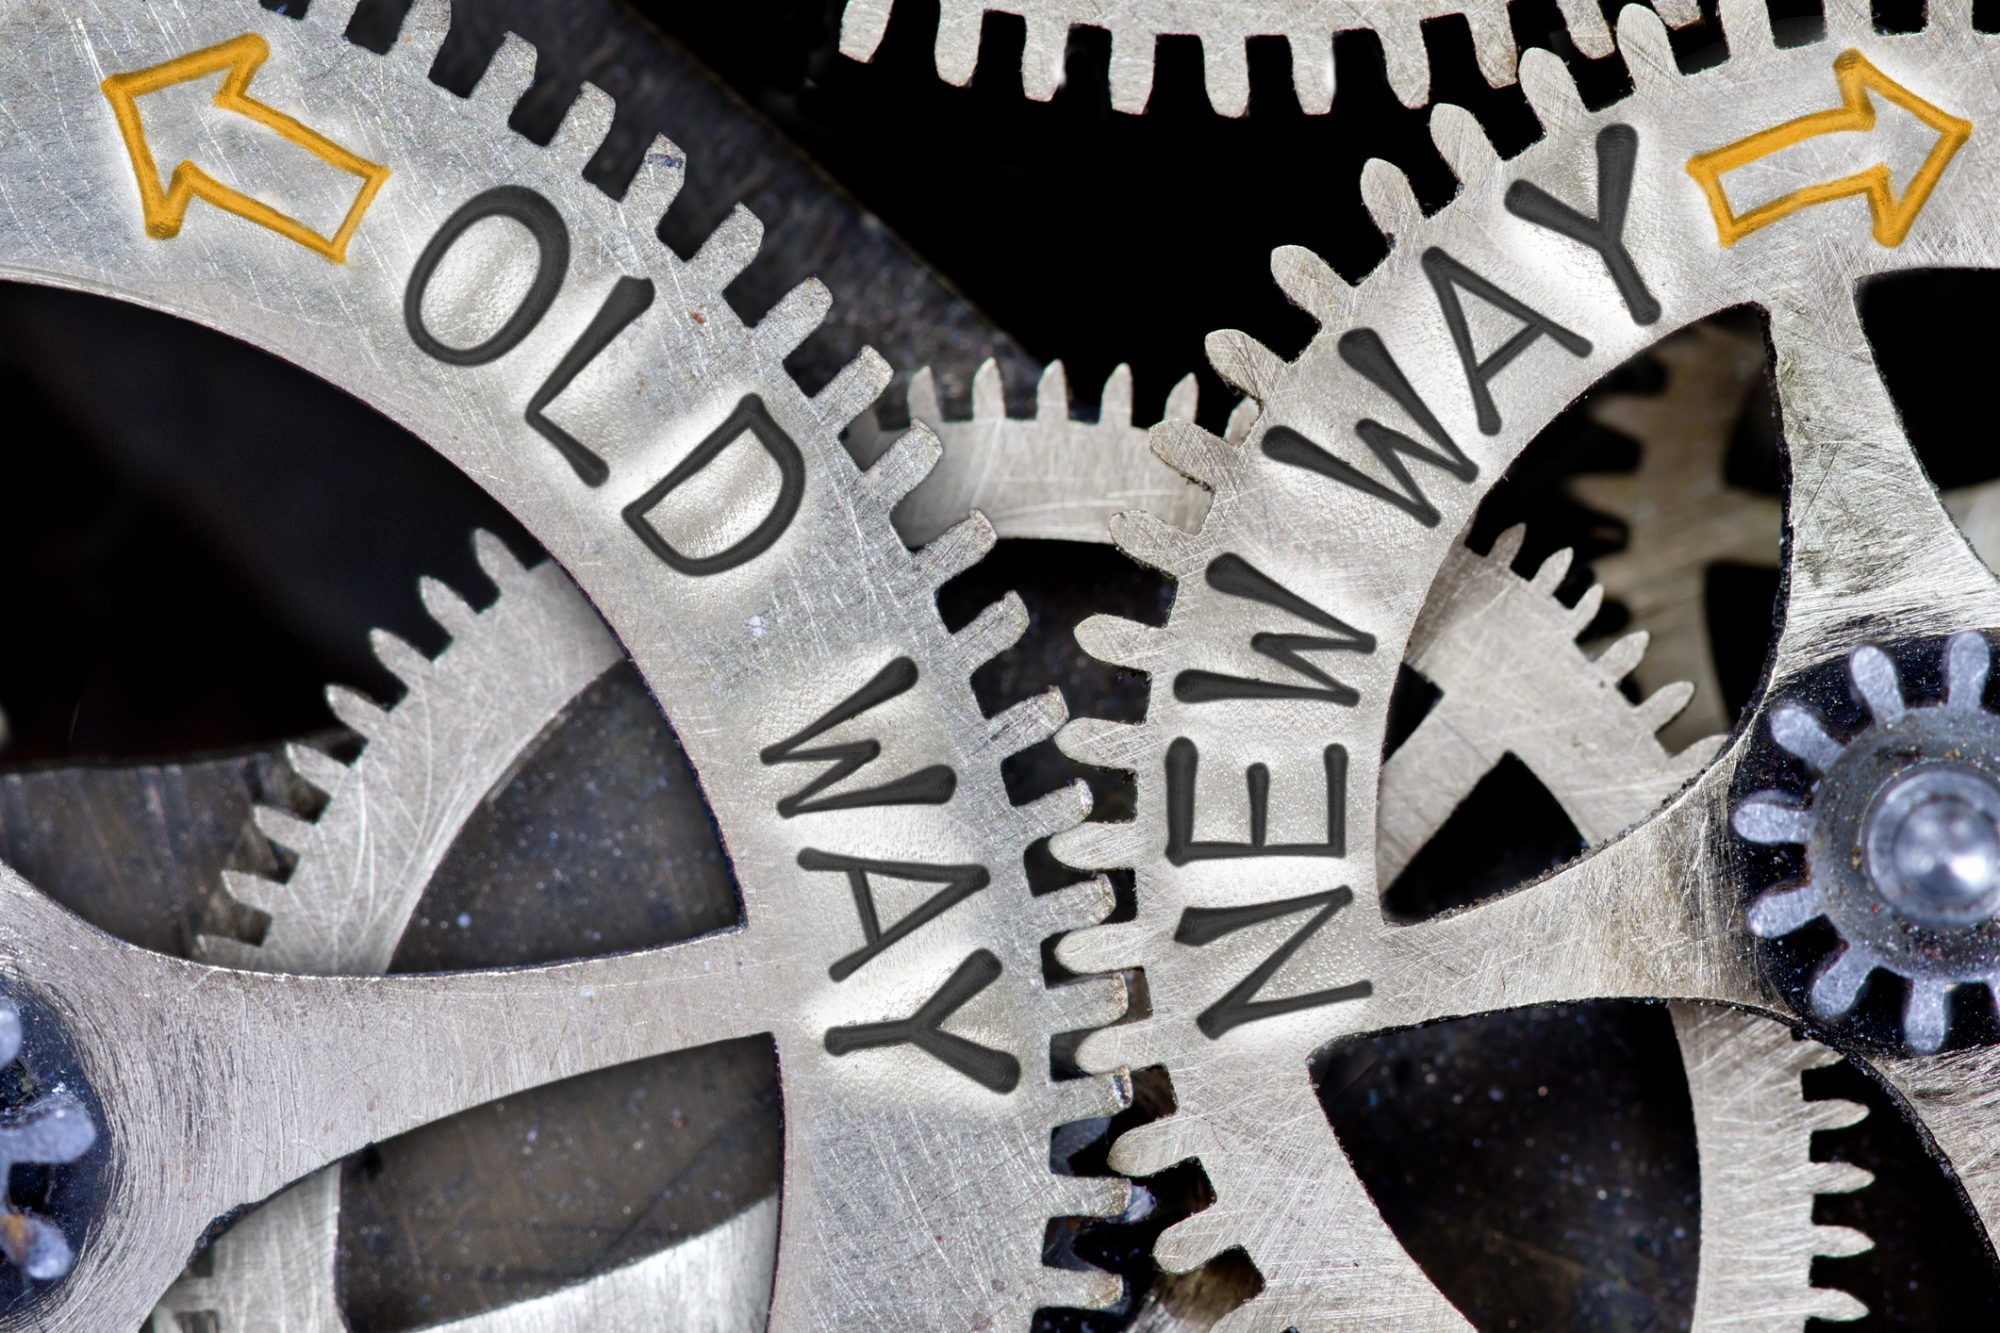 Image showing cogs representing the old way vs the new way of regulation